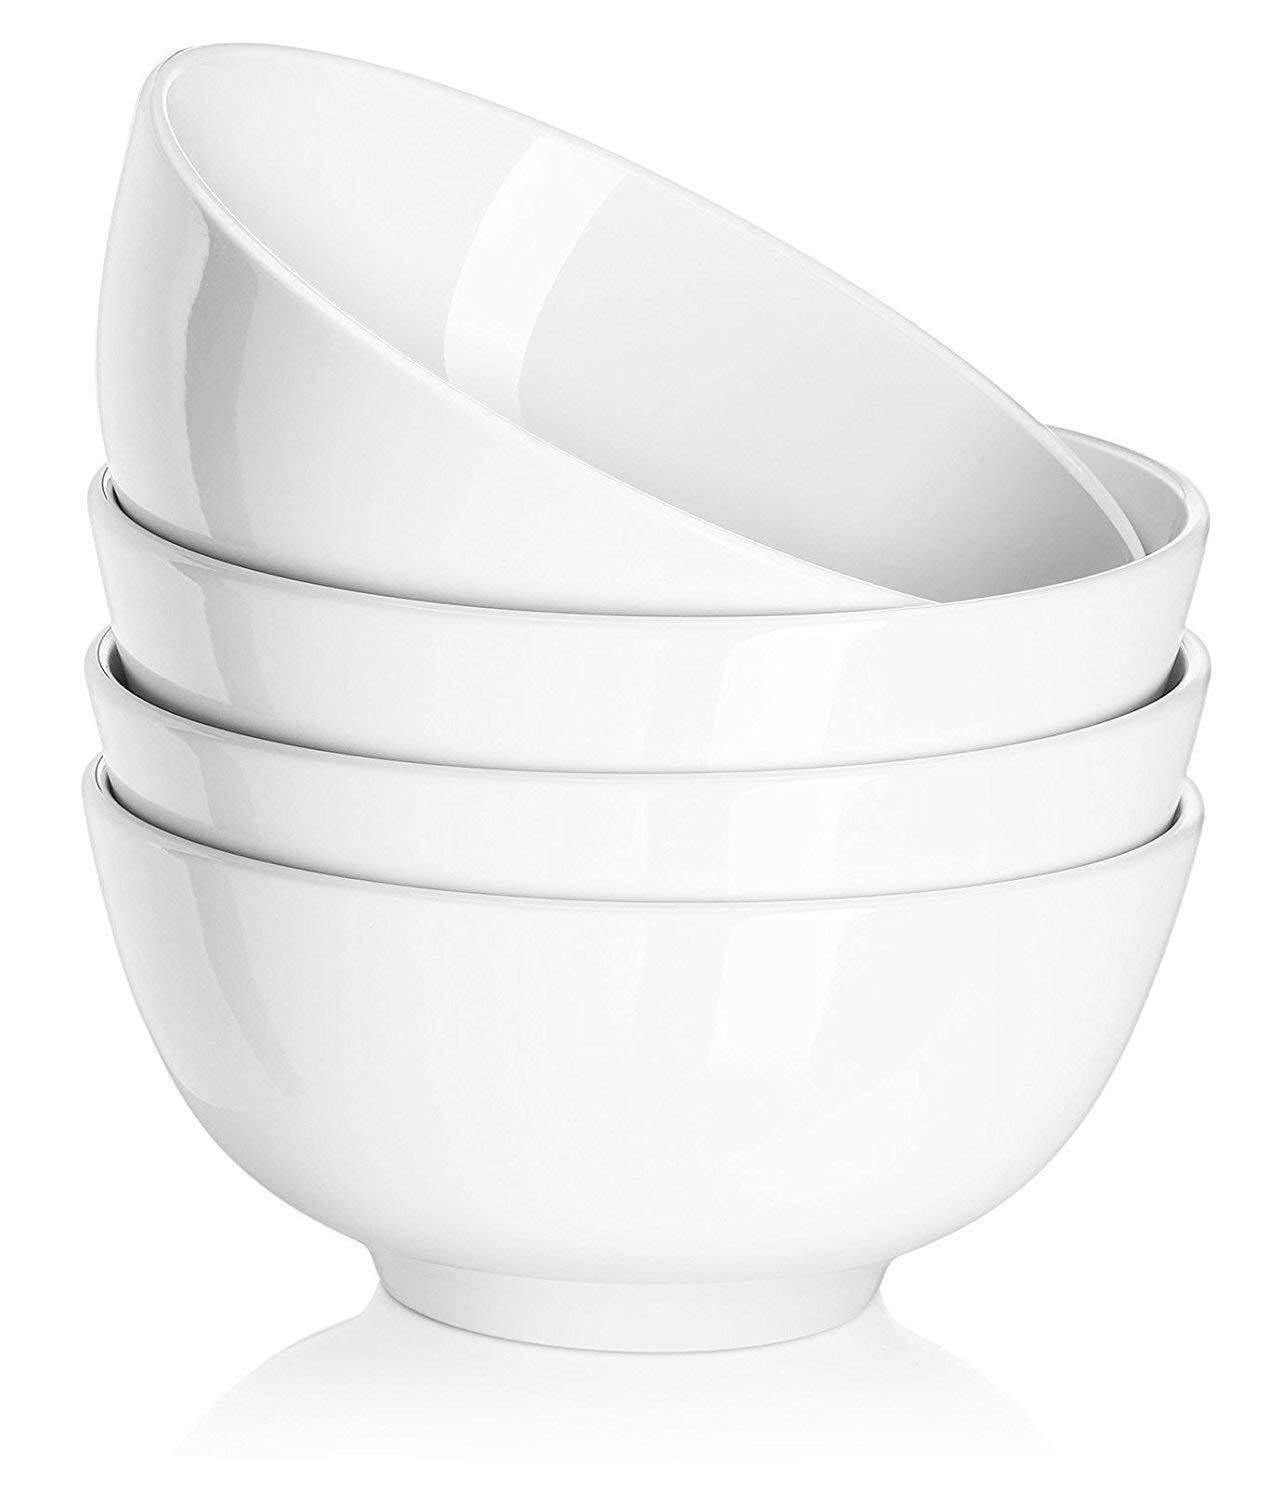 DOWAN 22oz Porcelain Soup/Cereal Bowls - 4 Packs, White by DOWAN (Image #1)